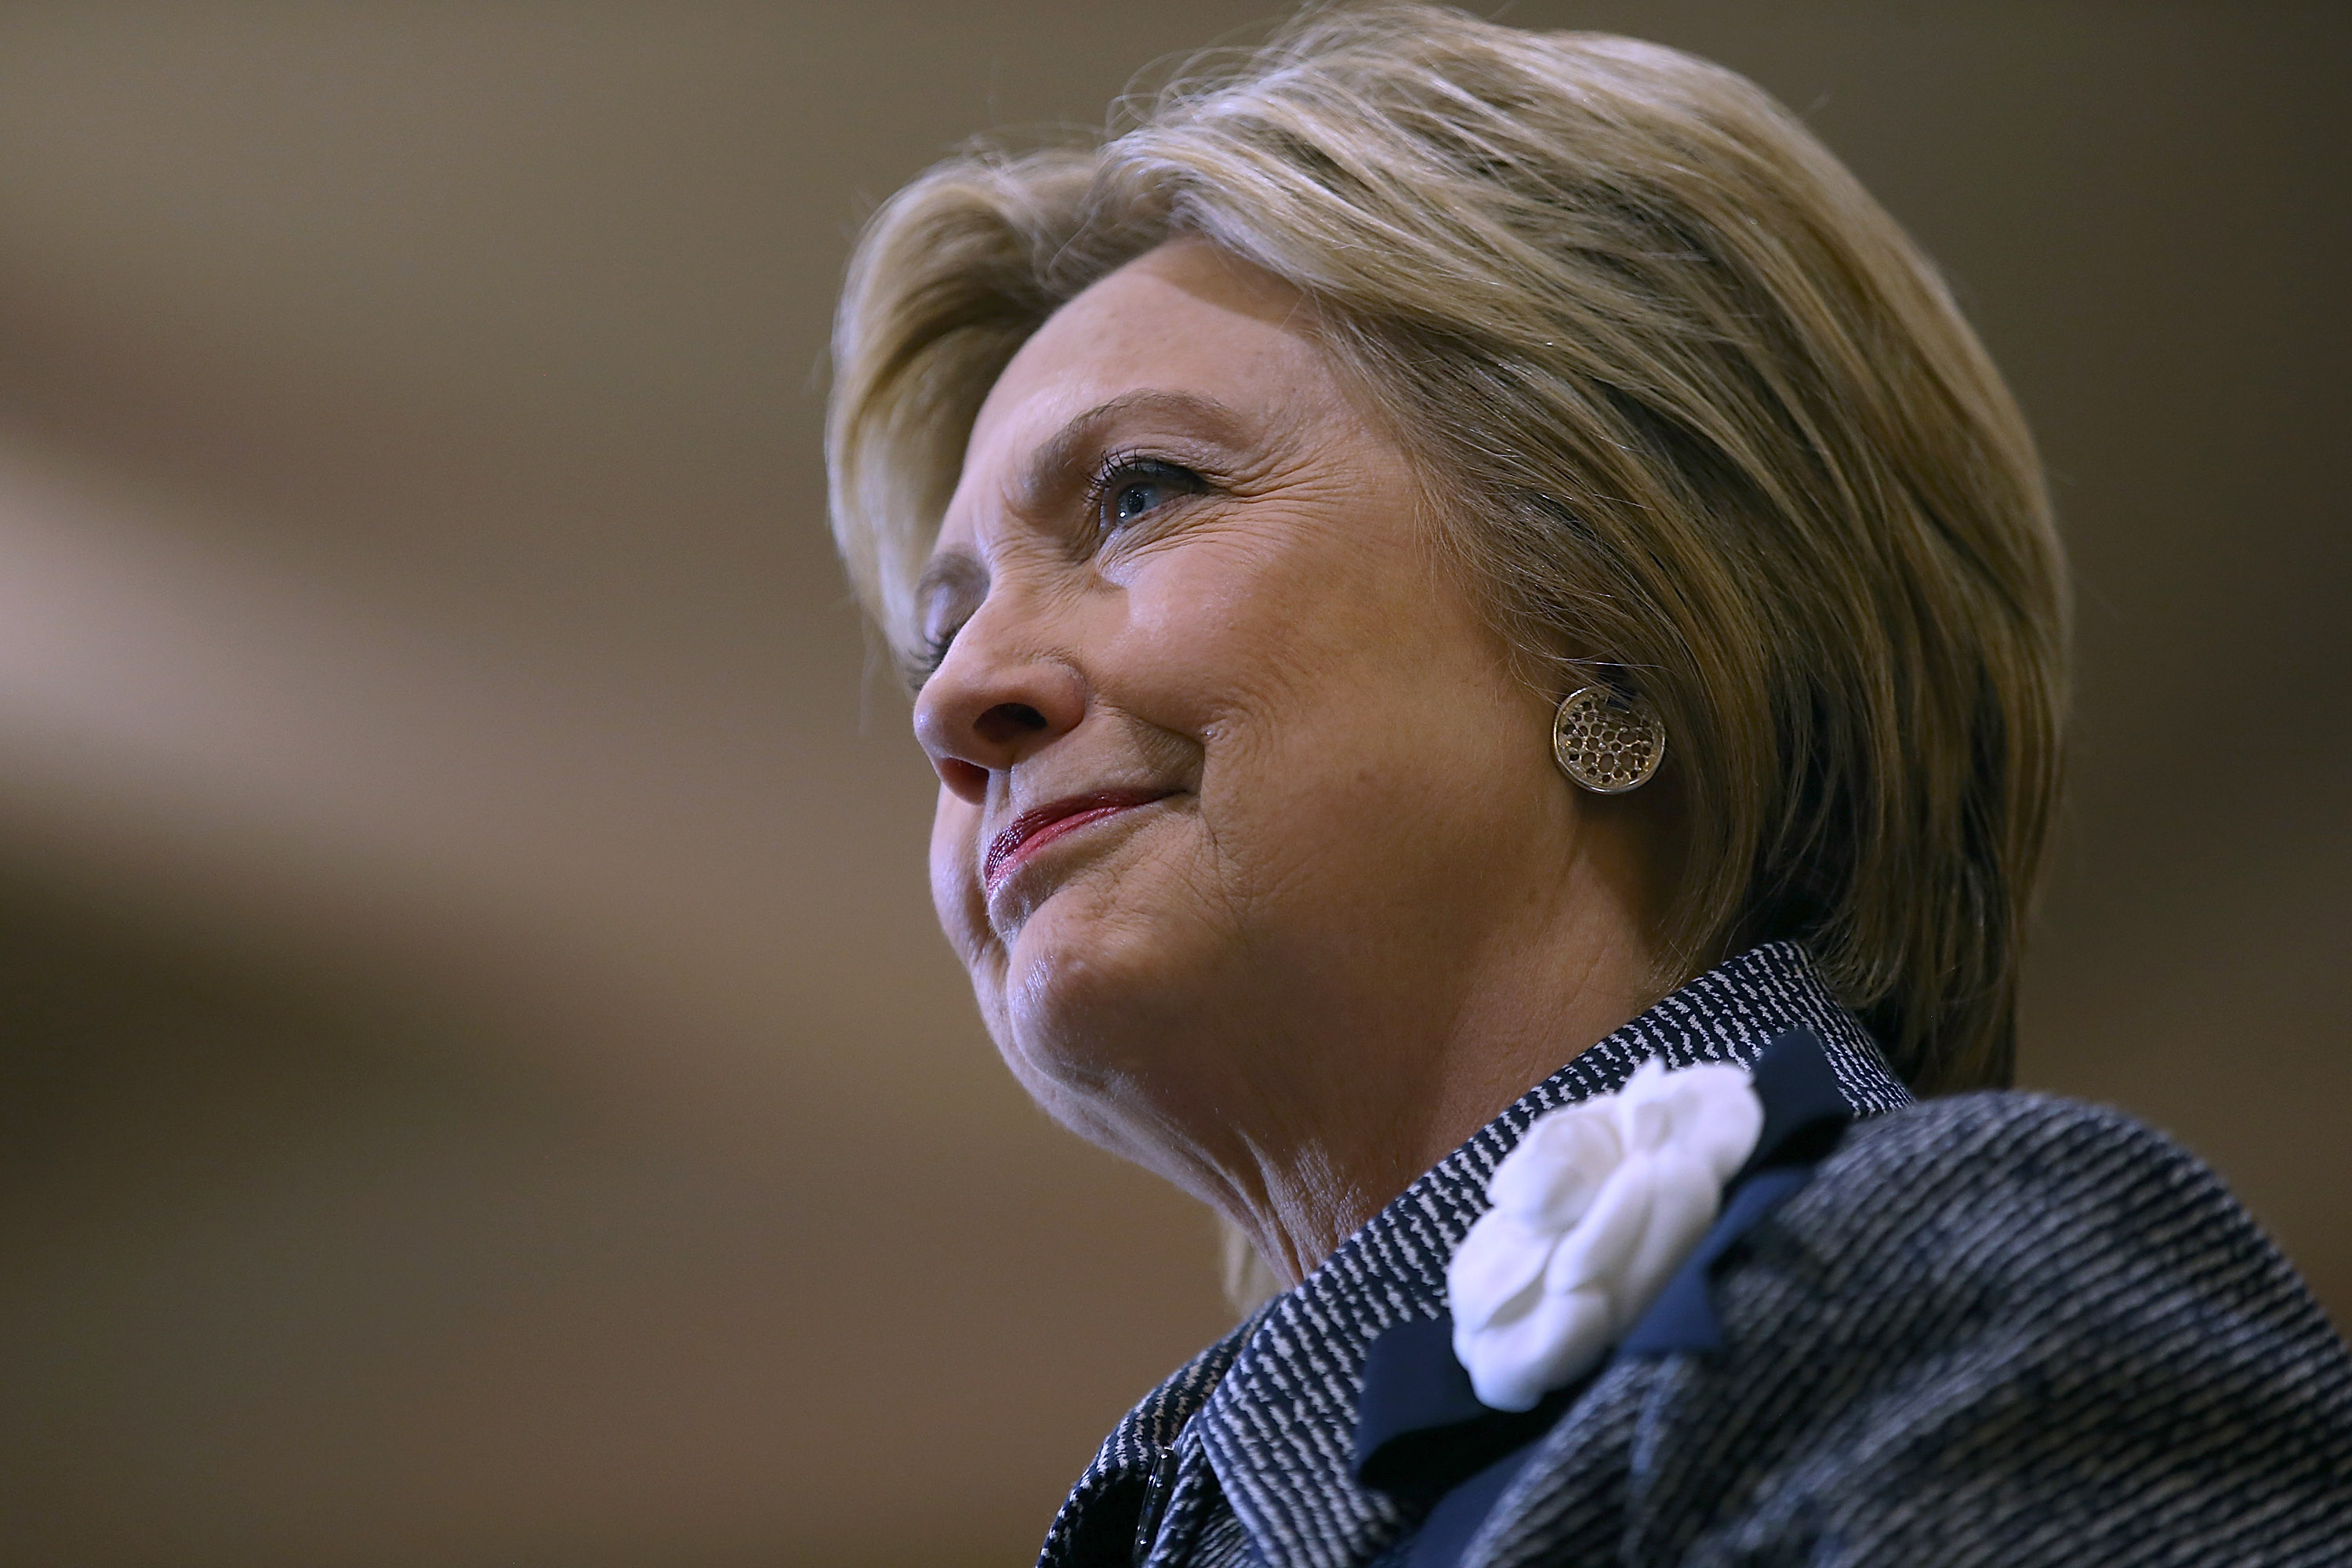 Democratic presidential candidate Hillary Clinton attends a  Get Out the Vote  event at the Chicago Journeymen Plumbers Local Union in Chicago on March 14, 2016.